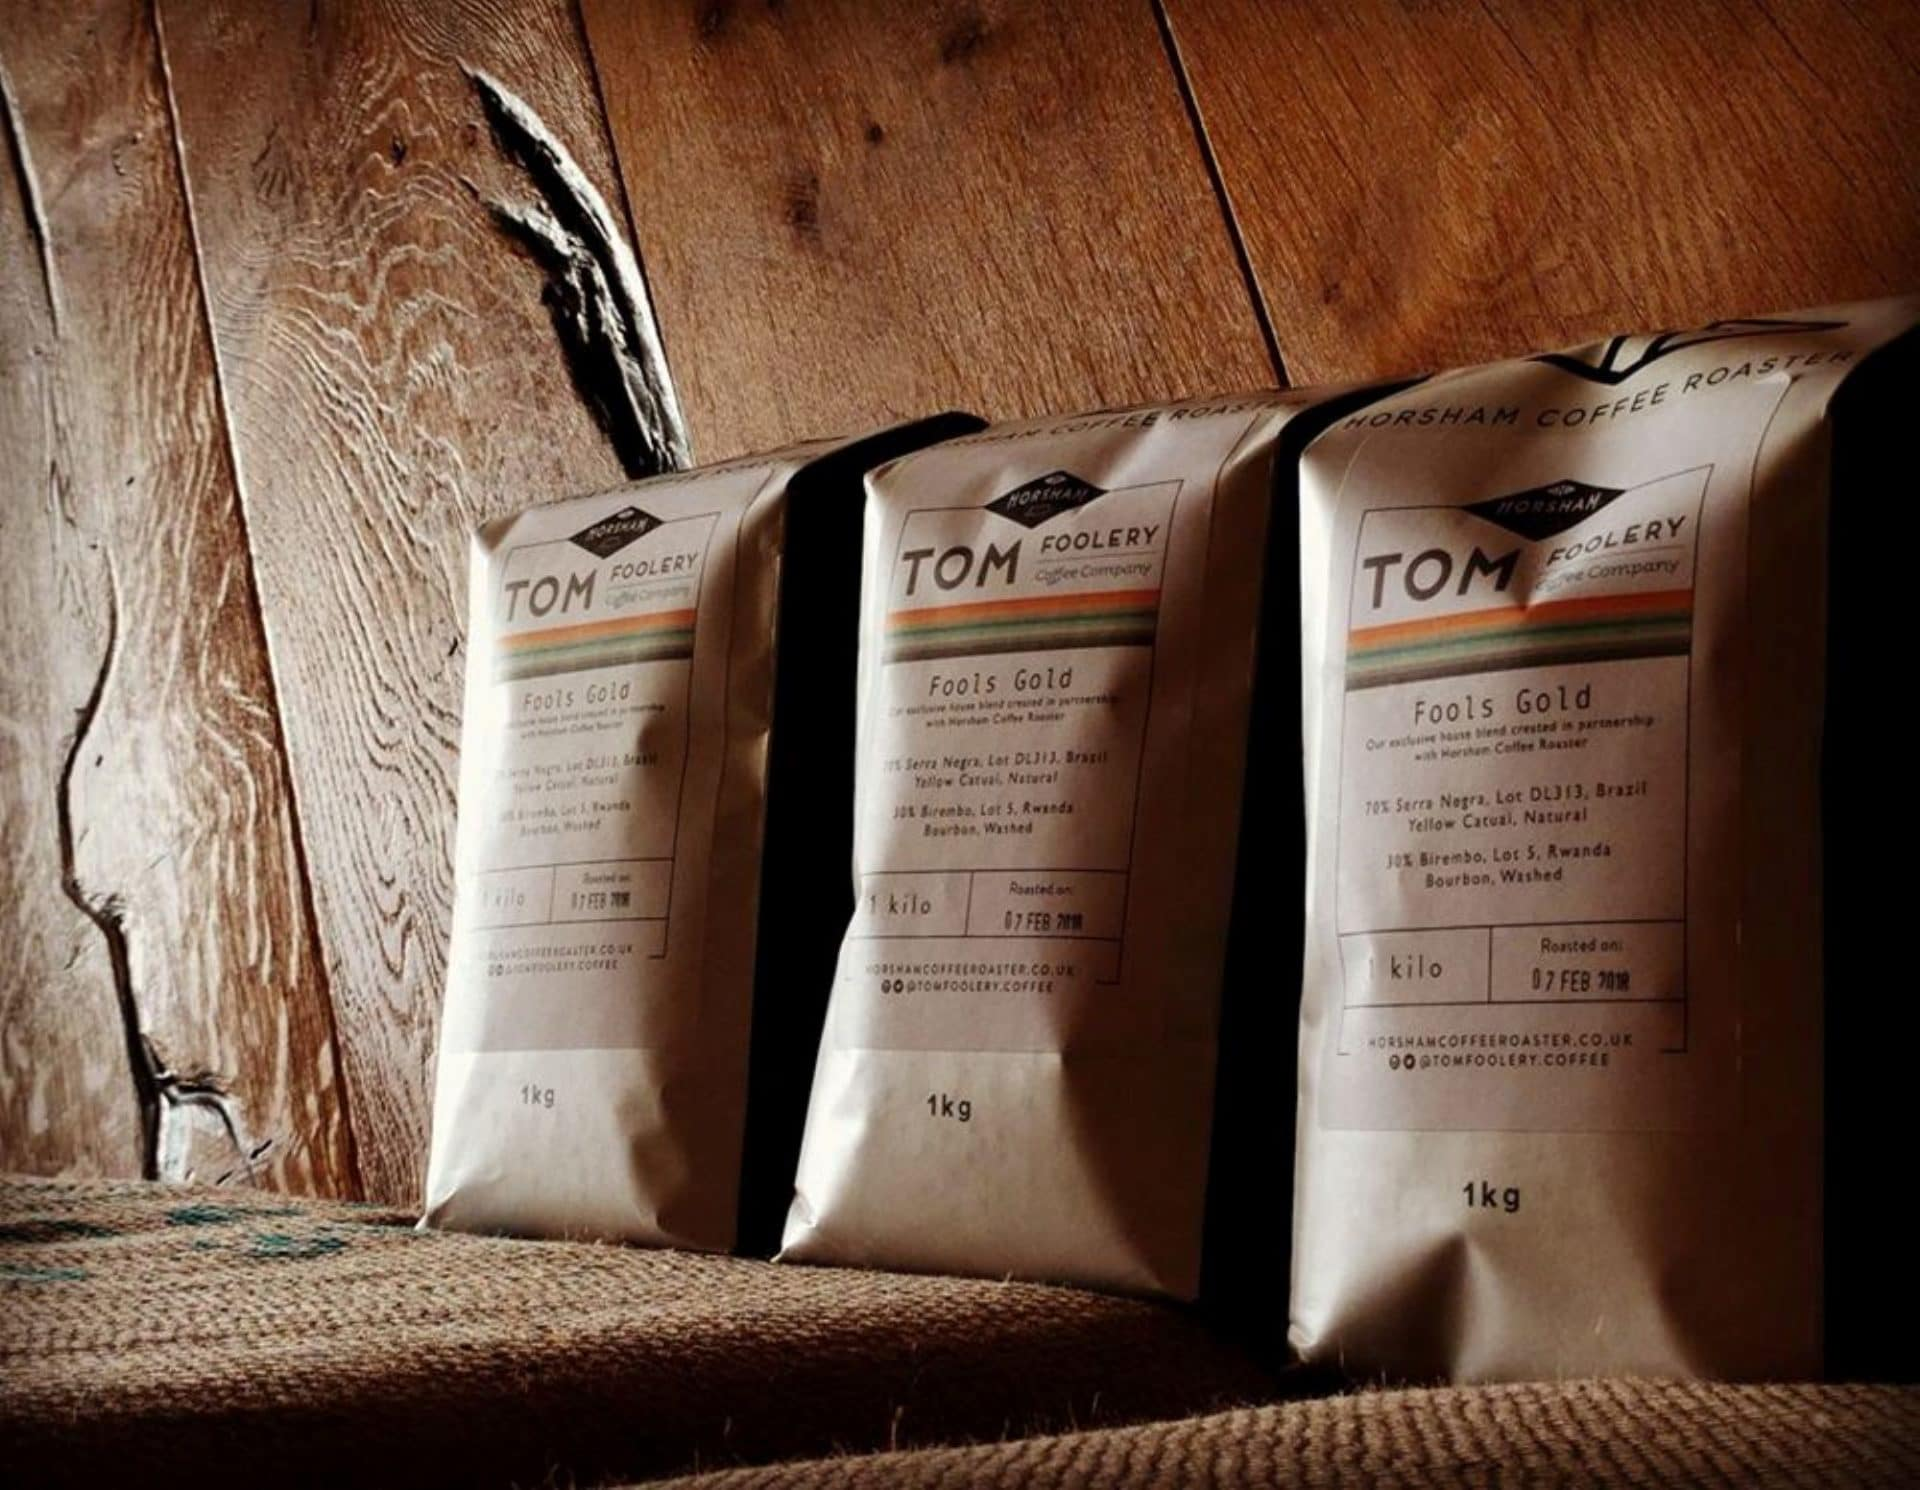 The Tom Foolery Coffee Company